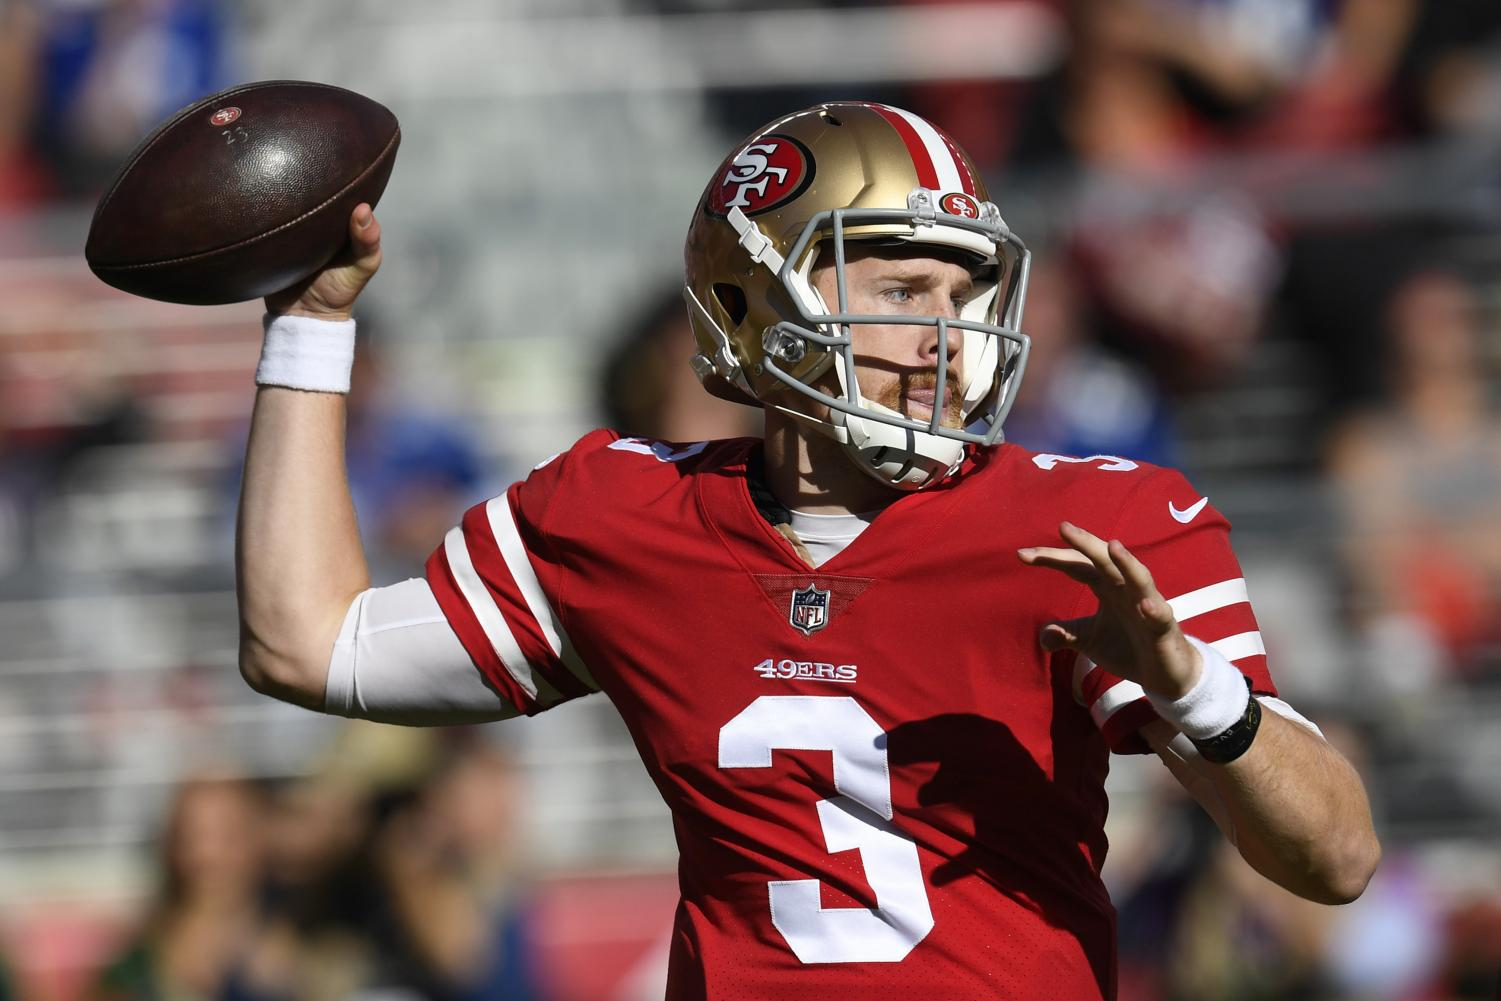 San Francisco 49ers quarterback C.J. Beathard (3) prepares to make a pass against the New York Giants during the first quarter Sunday, Nov. 12, 2017 in Santa Clara, Calif. The 49ers won, 31-21. (Jose Carlos Fajardo/Bay Area News Group/TNS)